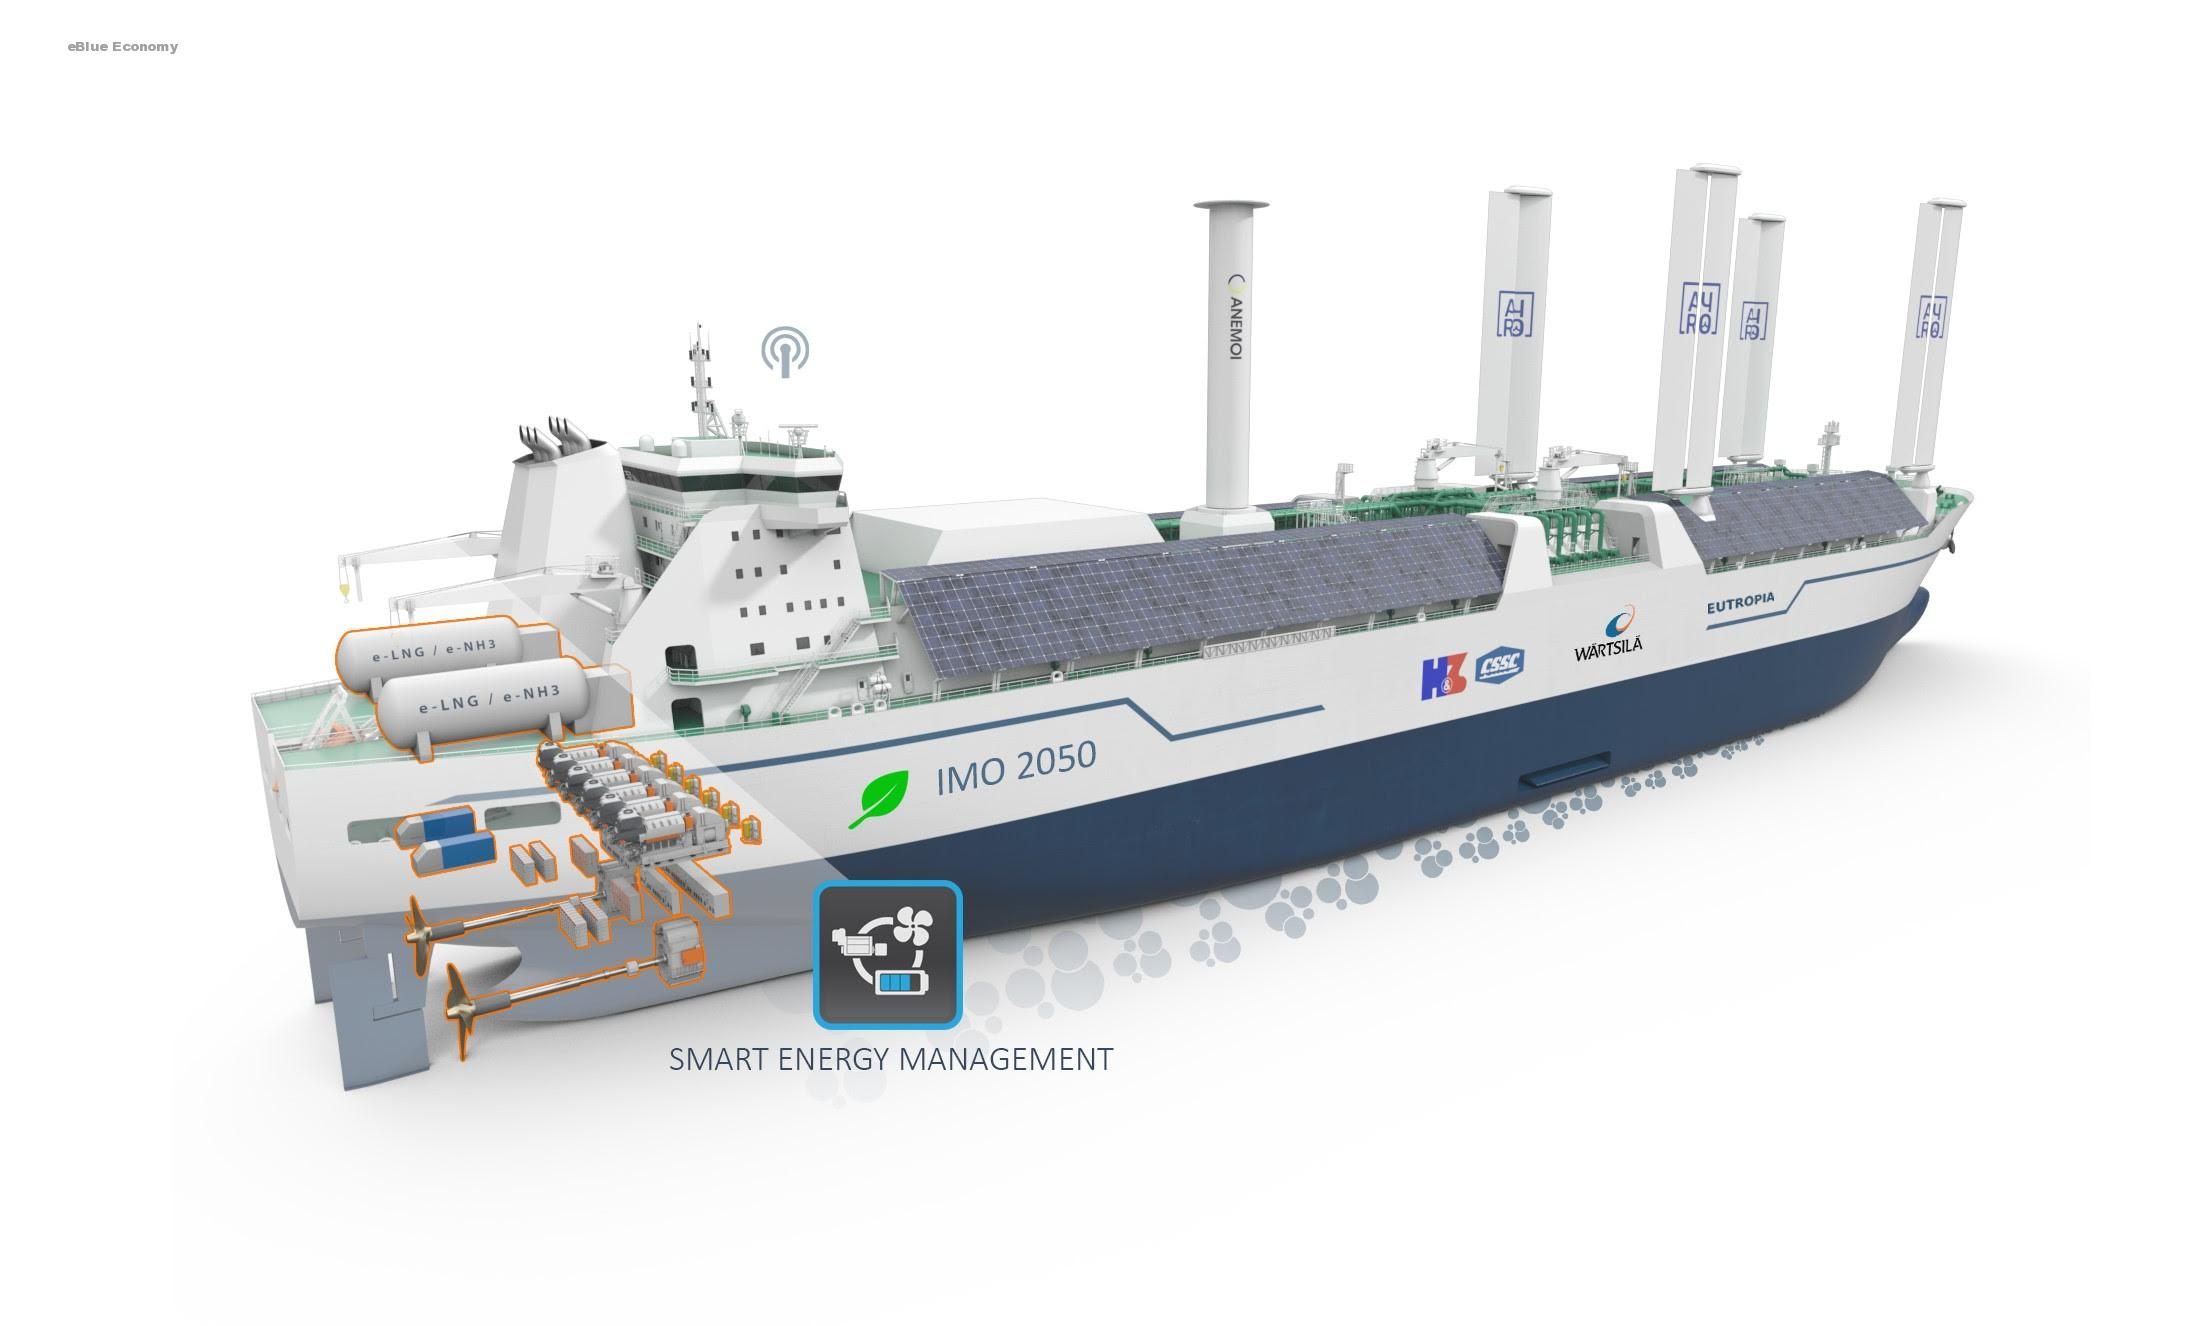 eBlue_economy_ Project for IMO 2050 CII-Ready LNG Carrier